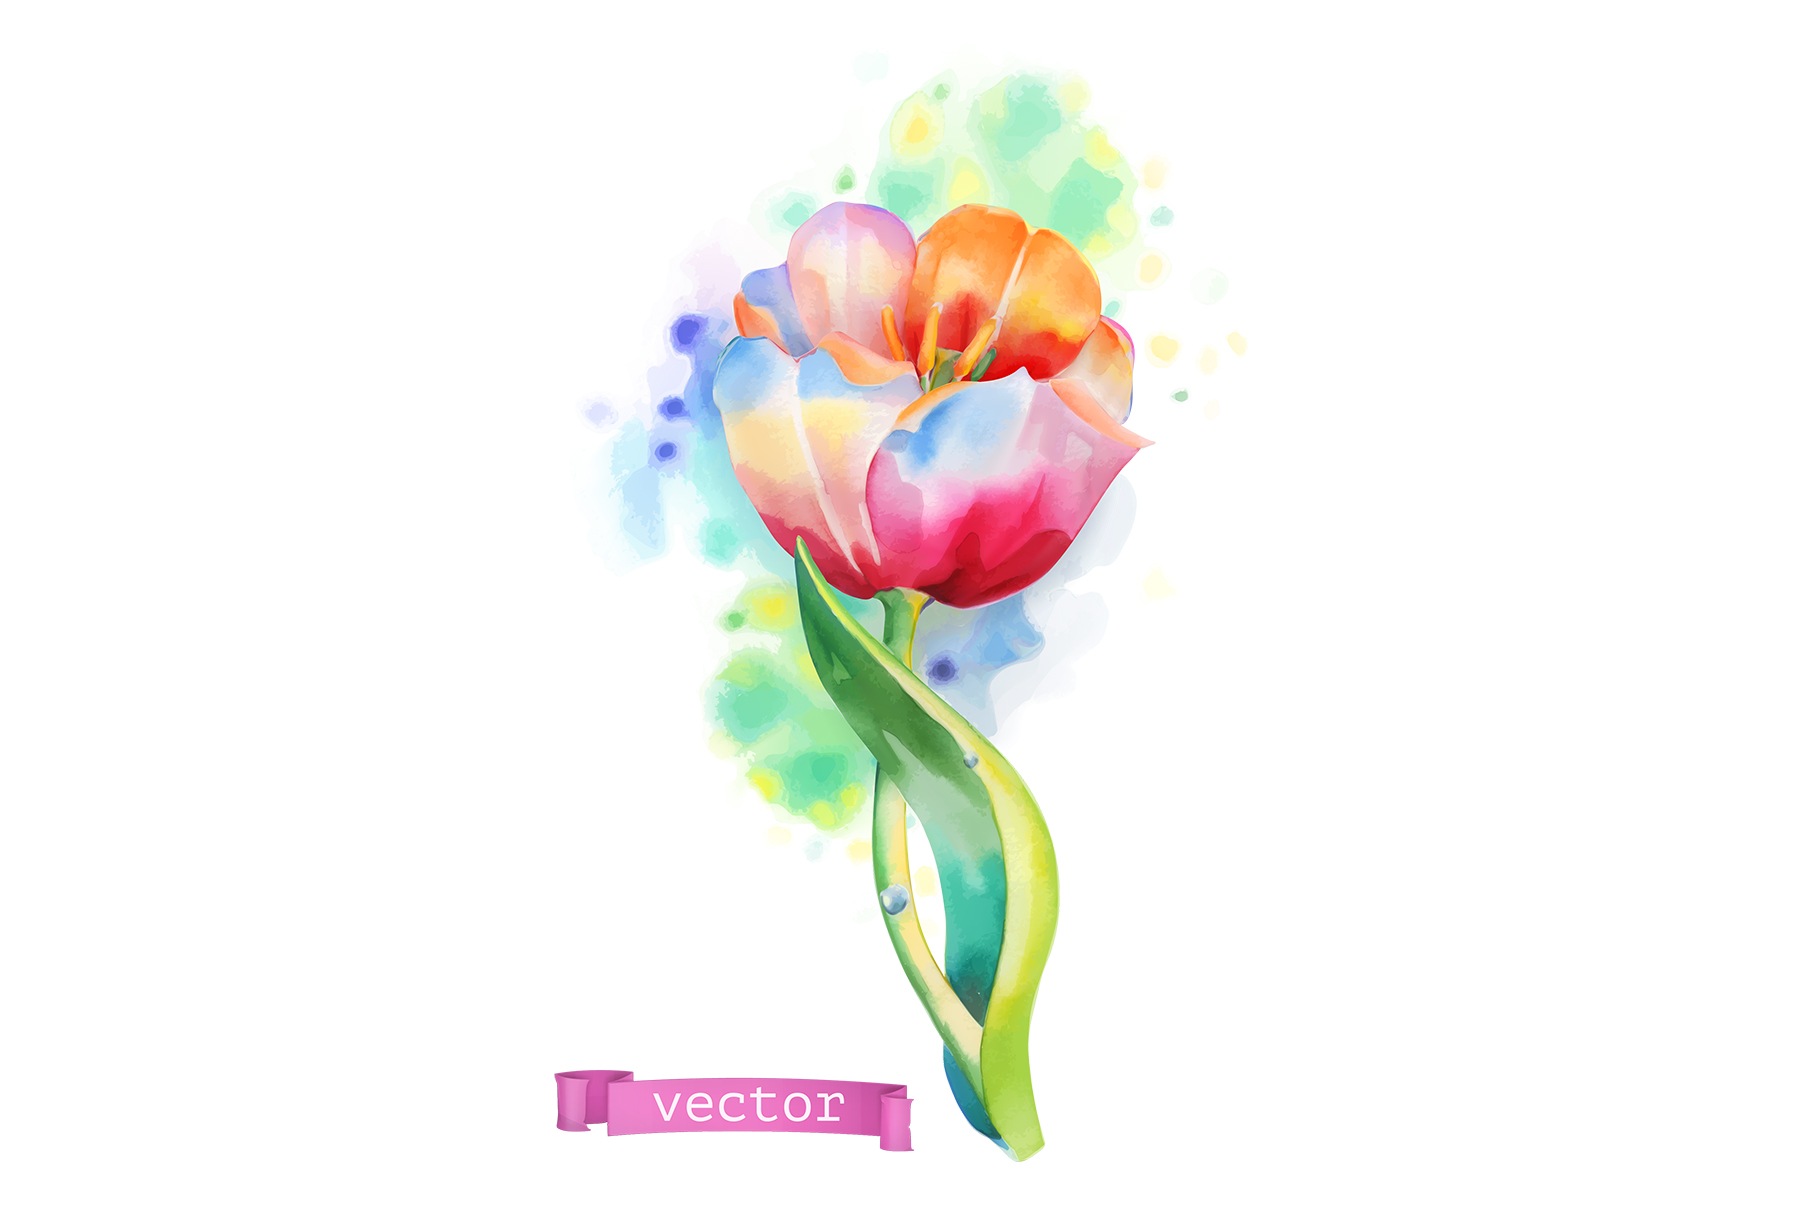 Flowers set. Rose and other plants. Watercolor, vector icons example image 2